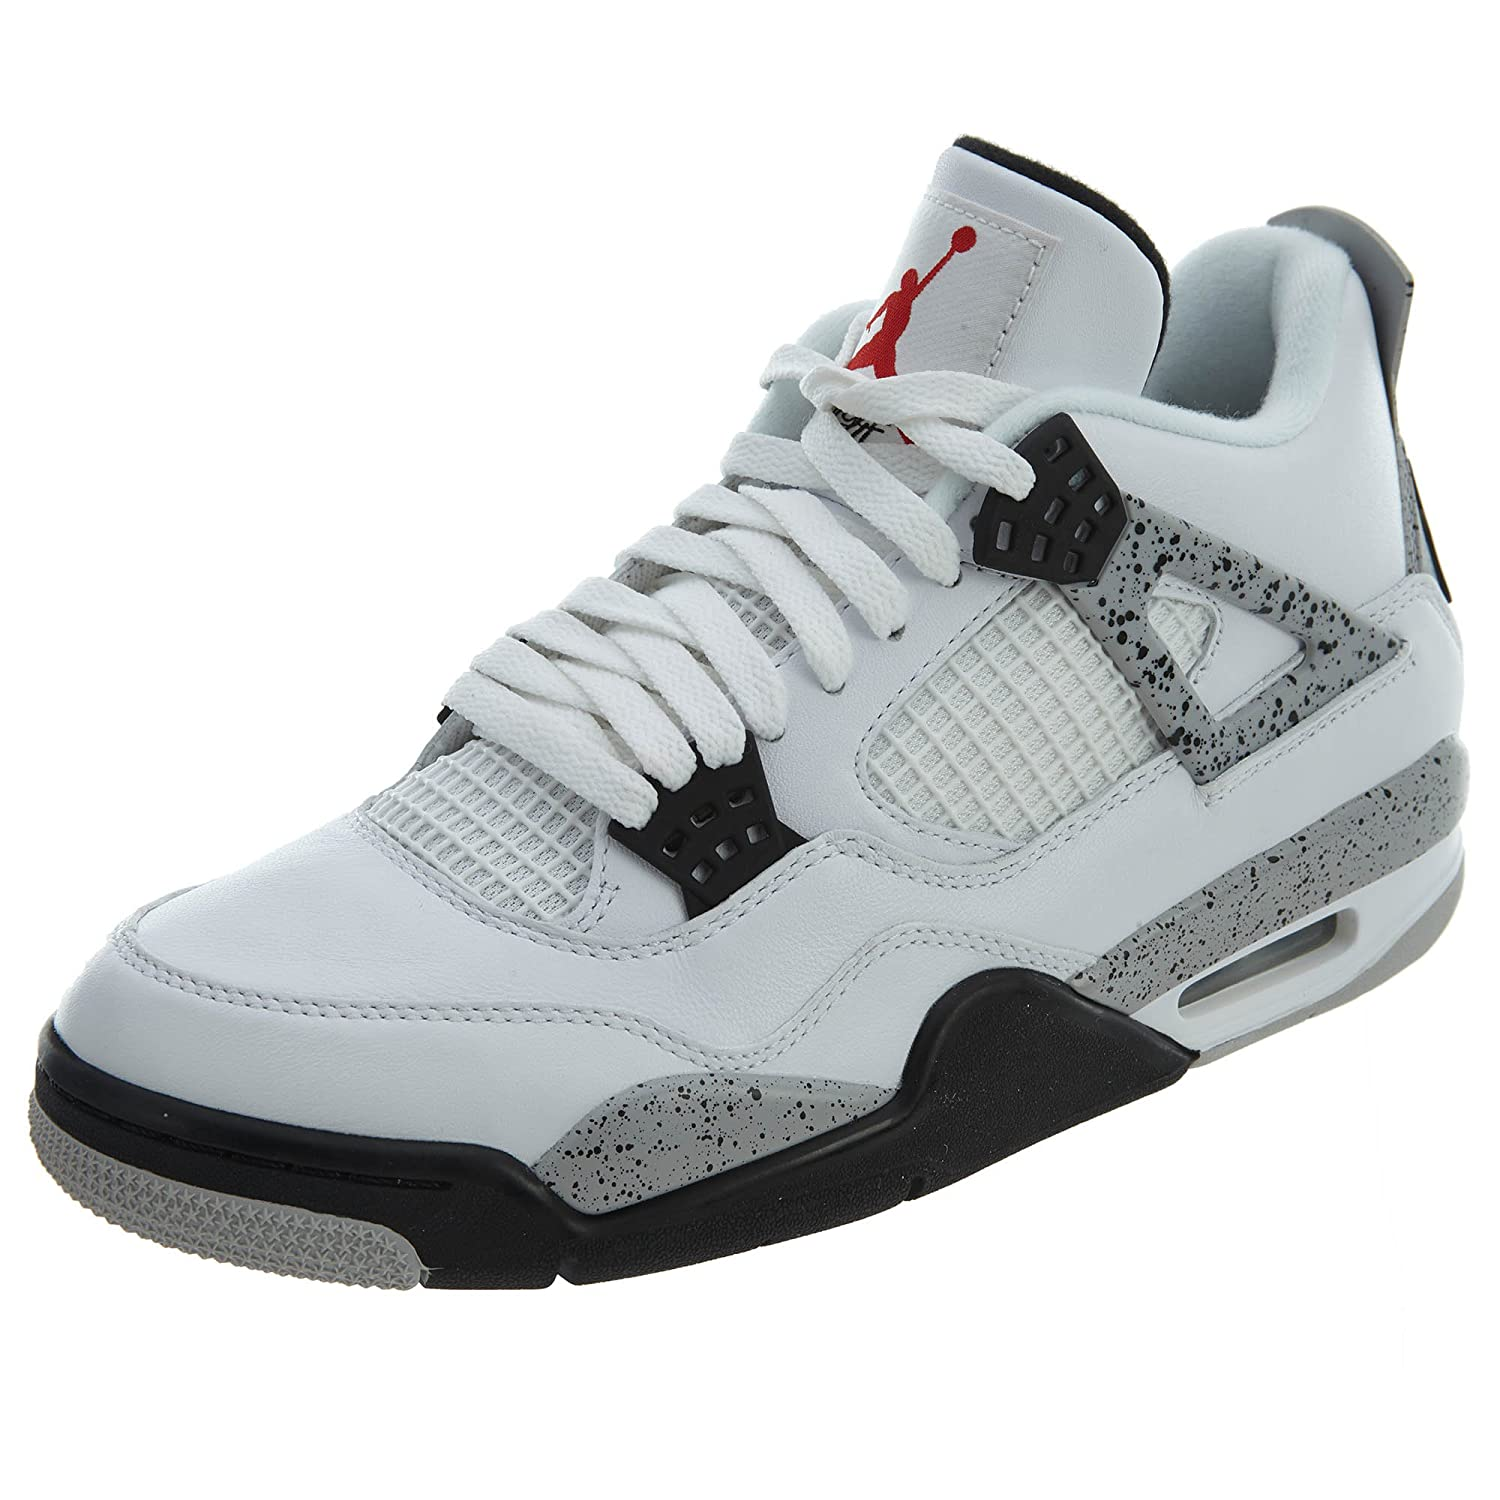 innovative design cc192 cde60 Air Jordan 4 Retro OG - 840606 192